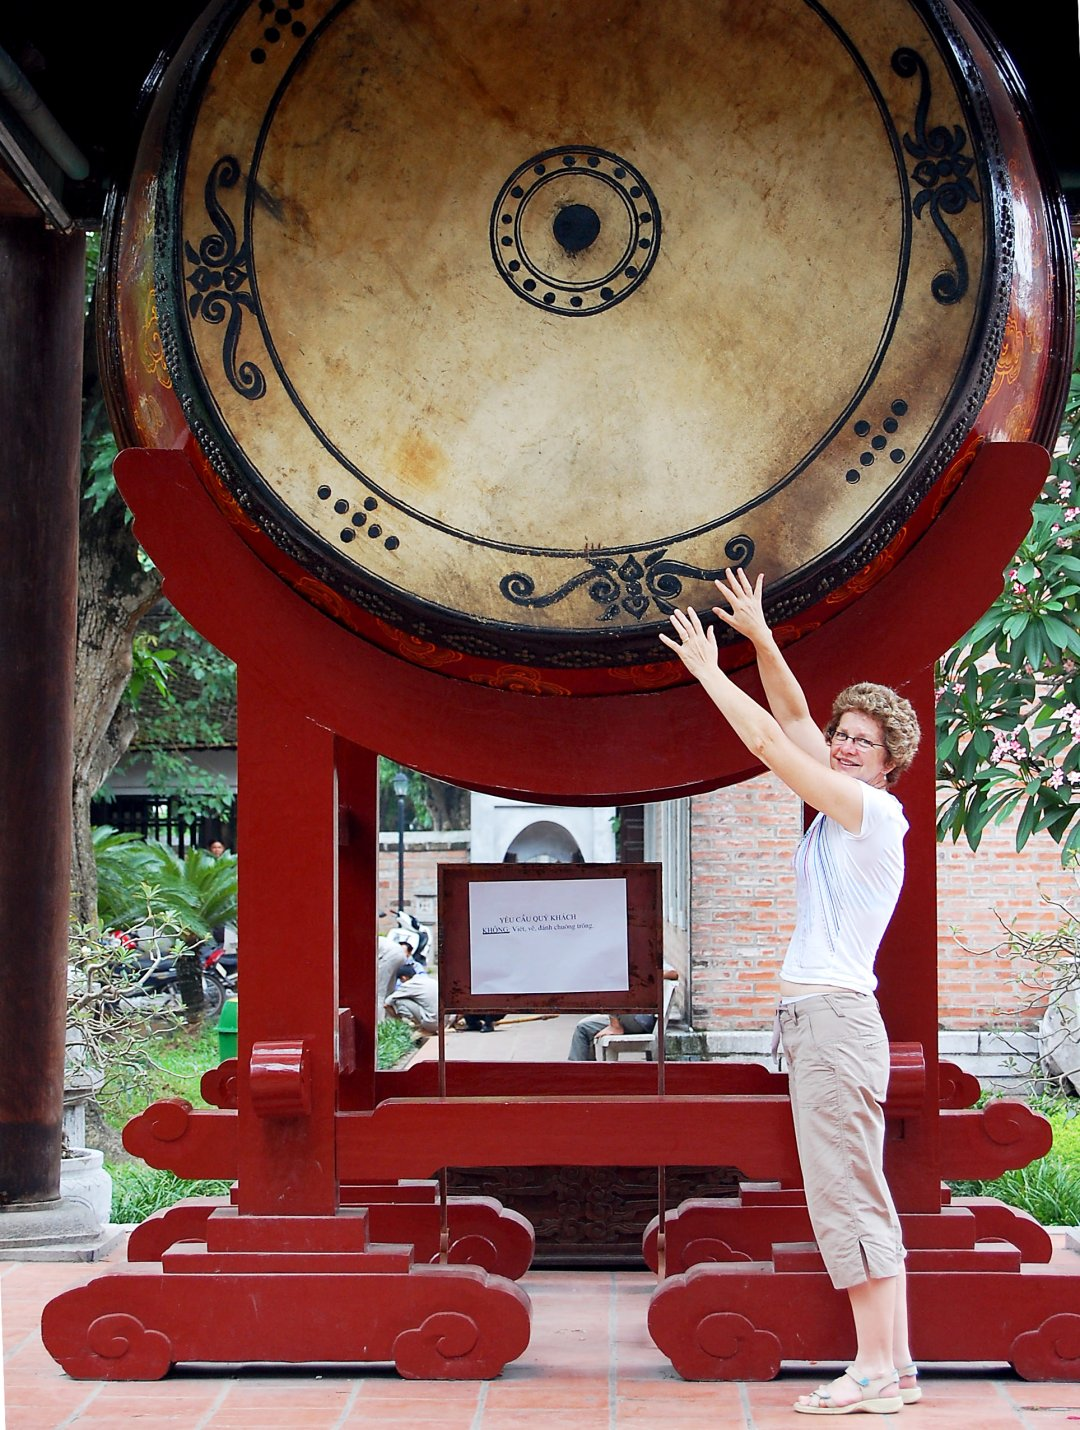 Drum in the Temple of Literature in Hanoi in Vietnam